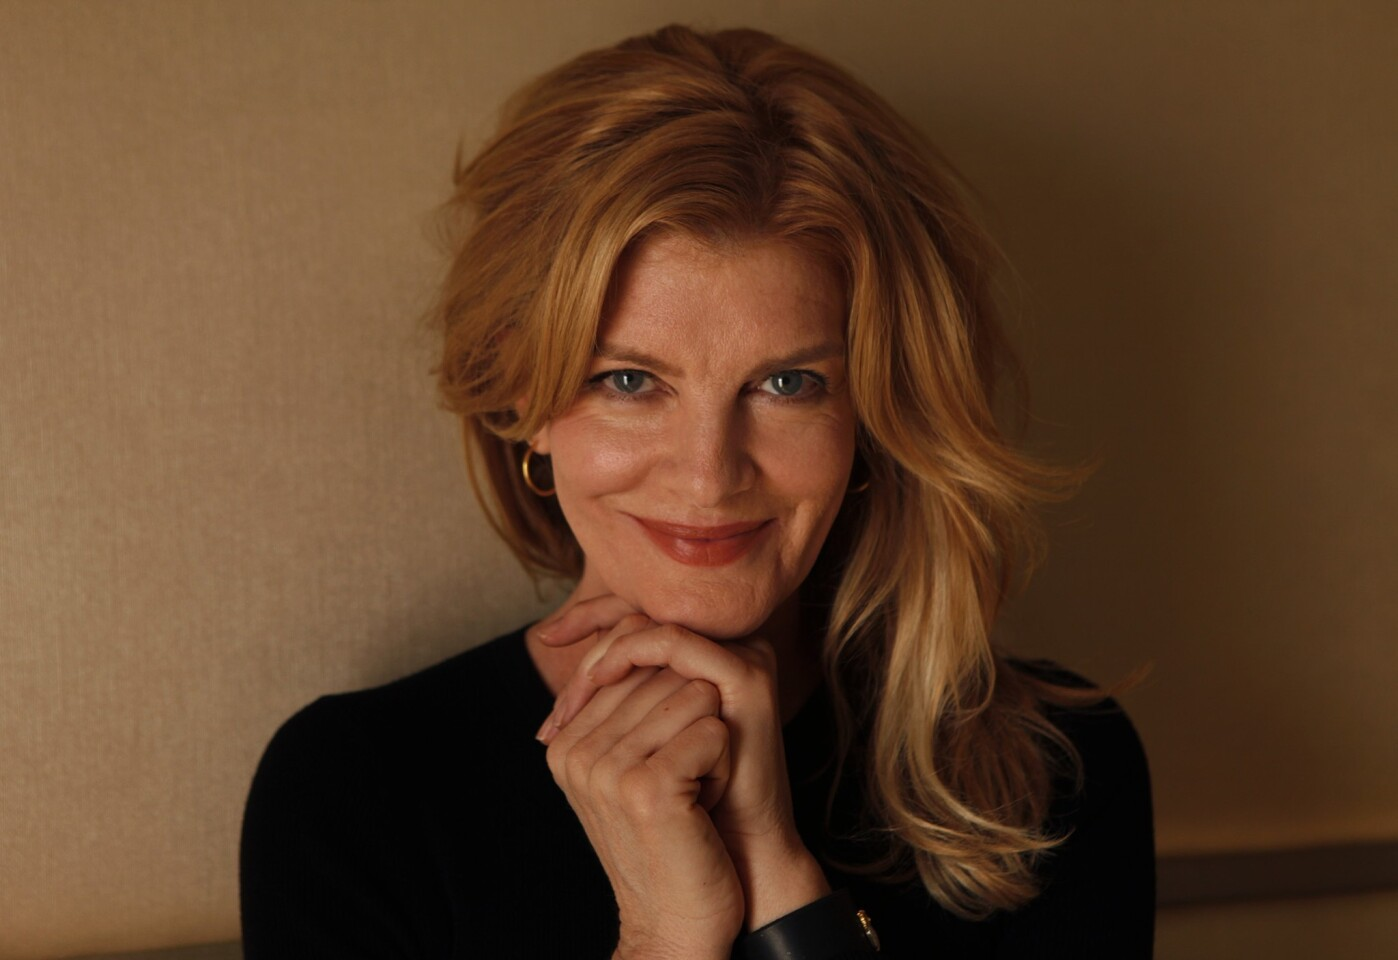 """Rene Russo, who appears in the crime thriller """"Nightcrawler,"""" apparently has never been a big fan of performing in films. """"Nightcrawler"""" was written and directed by her husband, Dan Gilroy."""